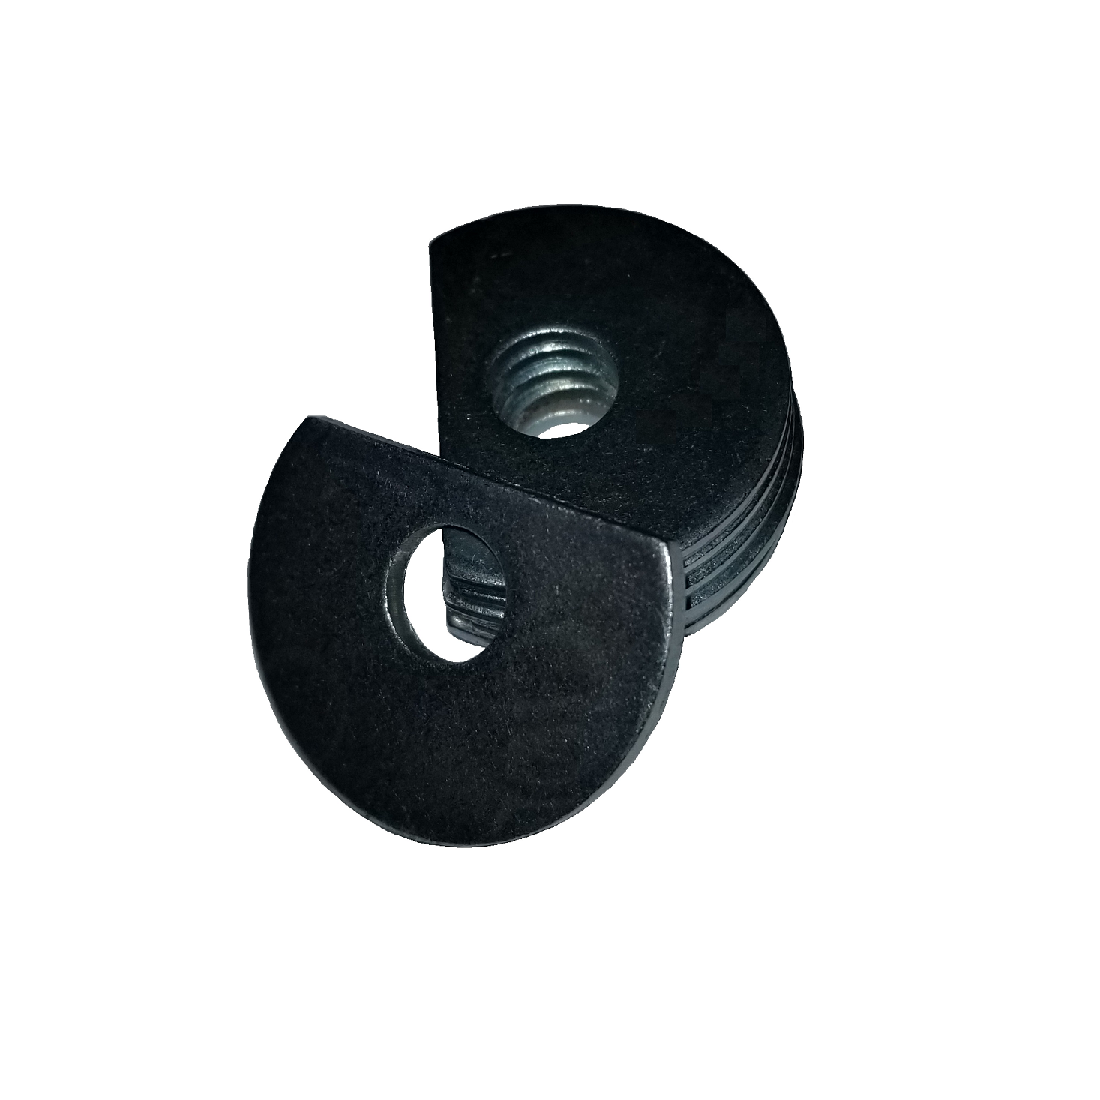 Clipped OD Washer - 0.656 ID, 1.311 OD, 0.094 Thick, Low Carbon Steel - Soft, Zinc & Yellow